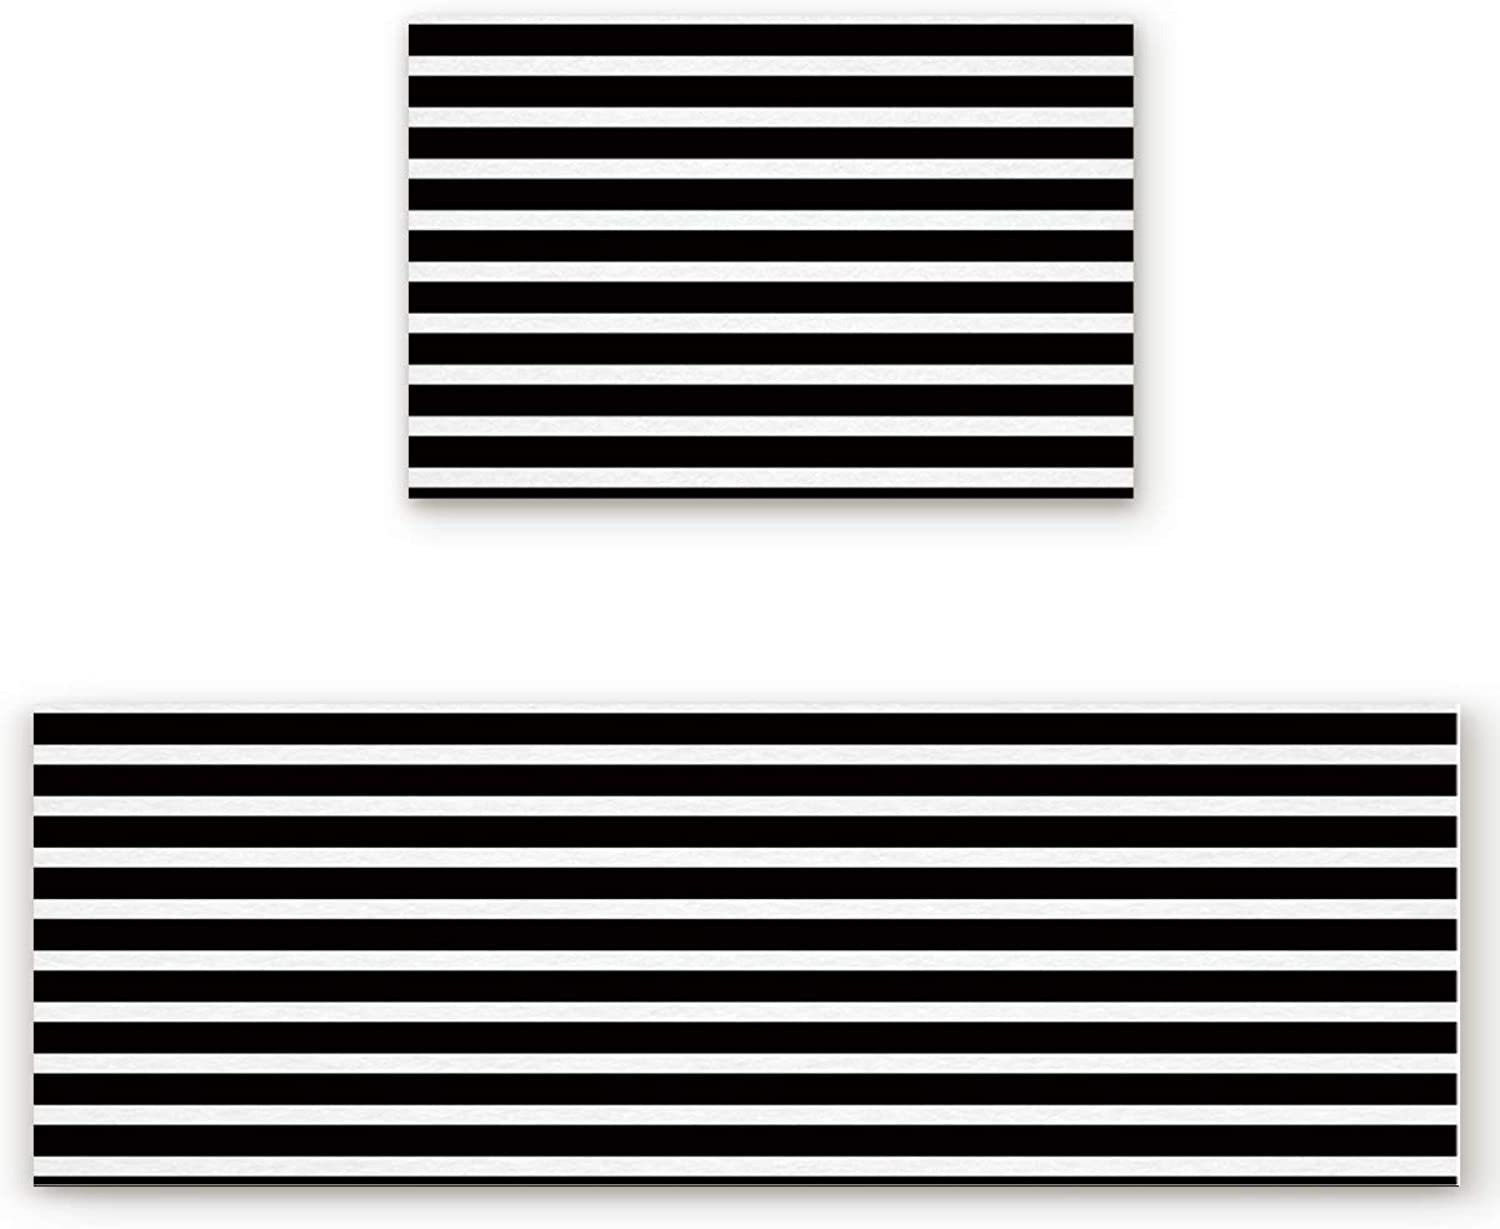 Savannan 2 Piece Non-Slip Kitchen Bathroom Entrance Mat Absorbent Durable Floor Doormat Runner Rug Set - Black and White Stripe